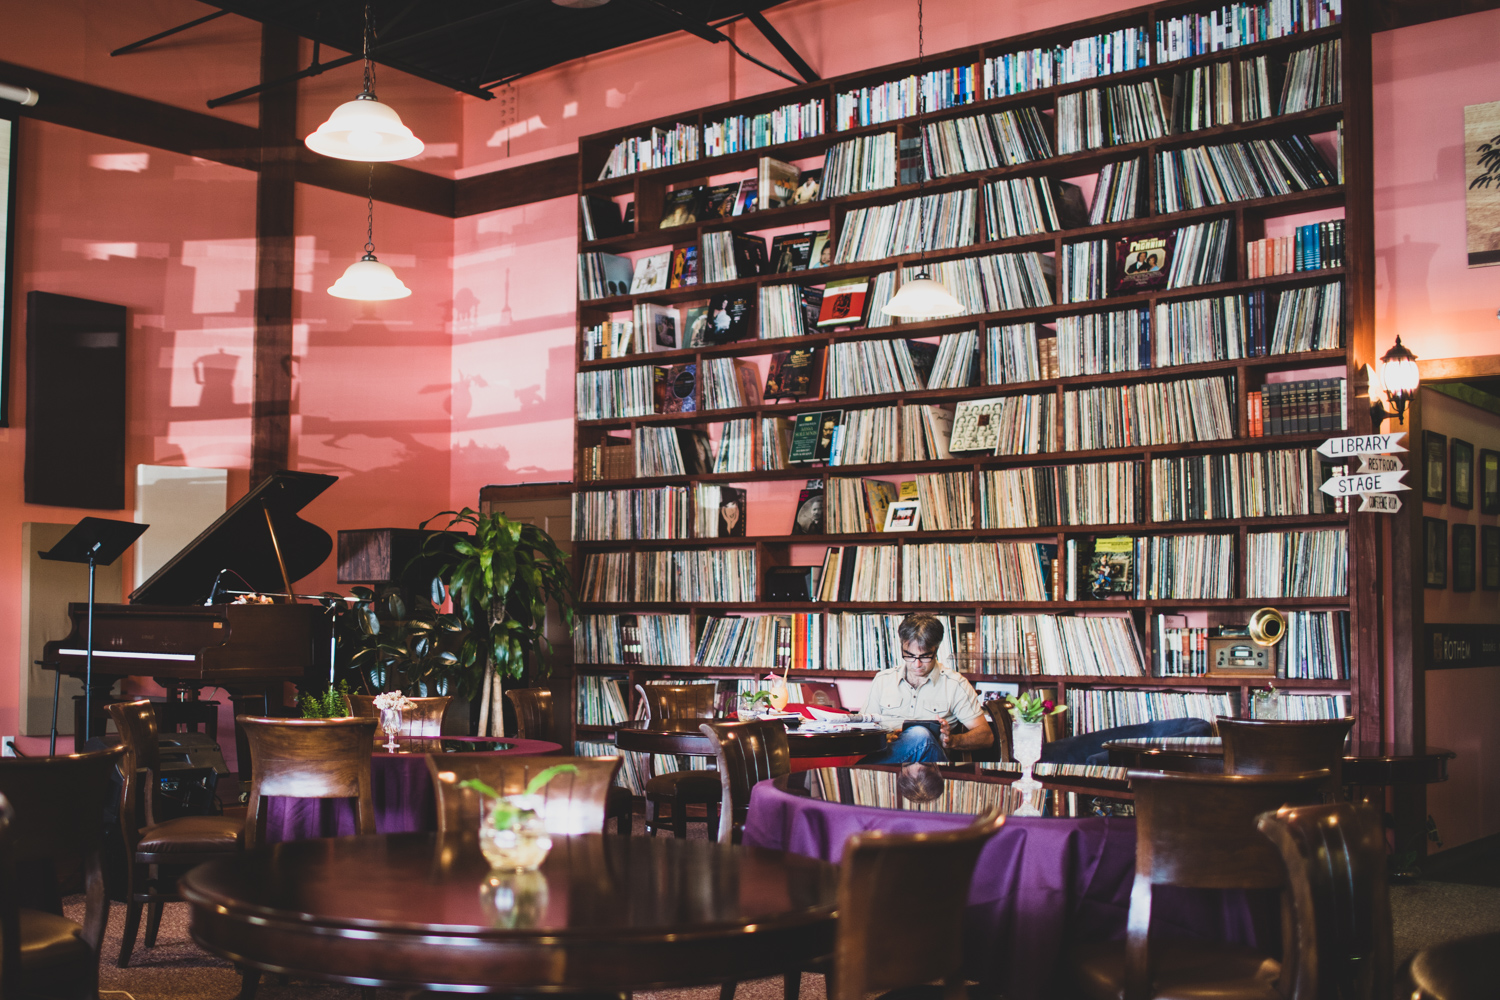 Cafe Rothem features high ceilings, plenty of seating, and a large selection of books.